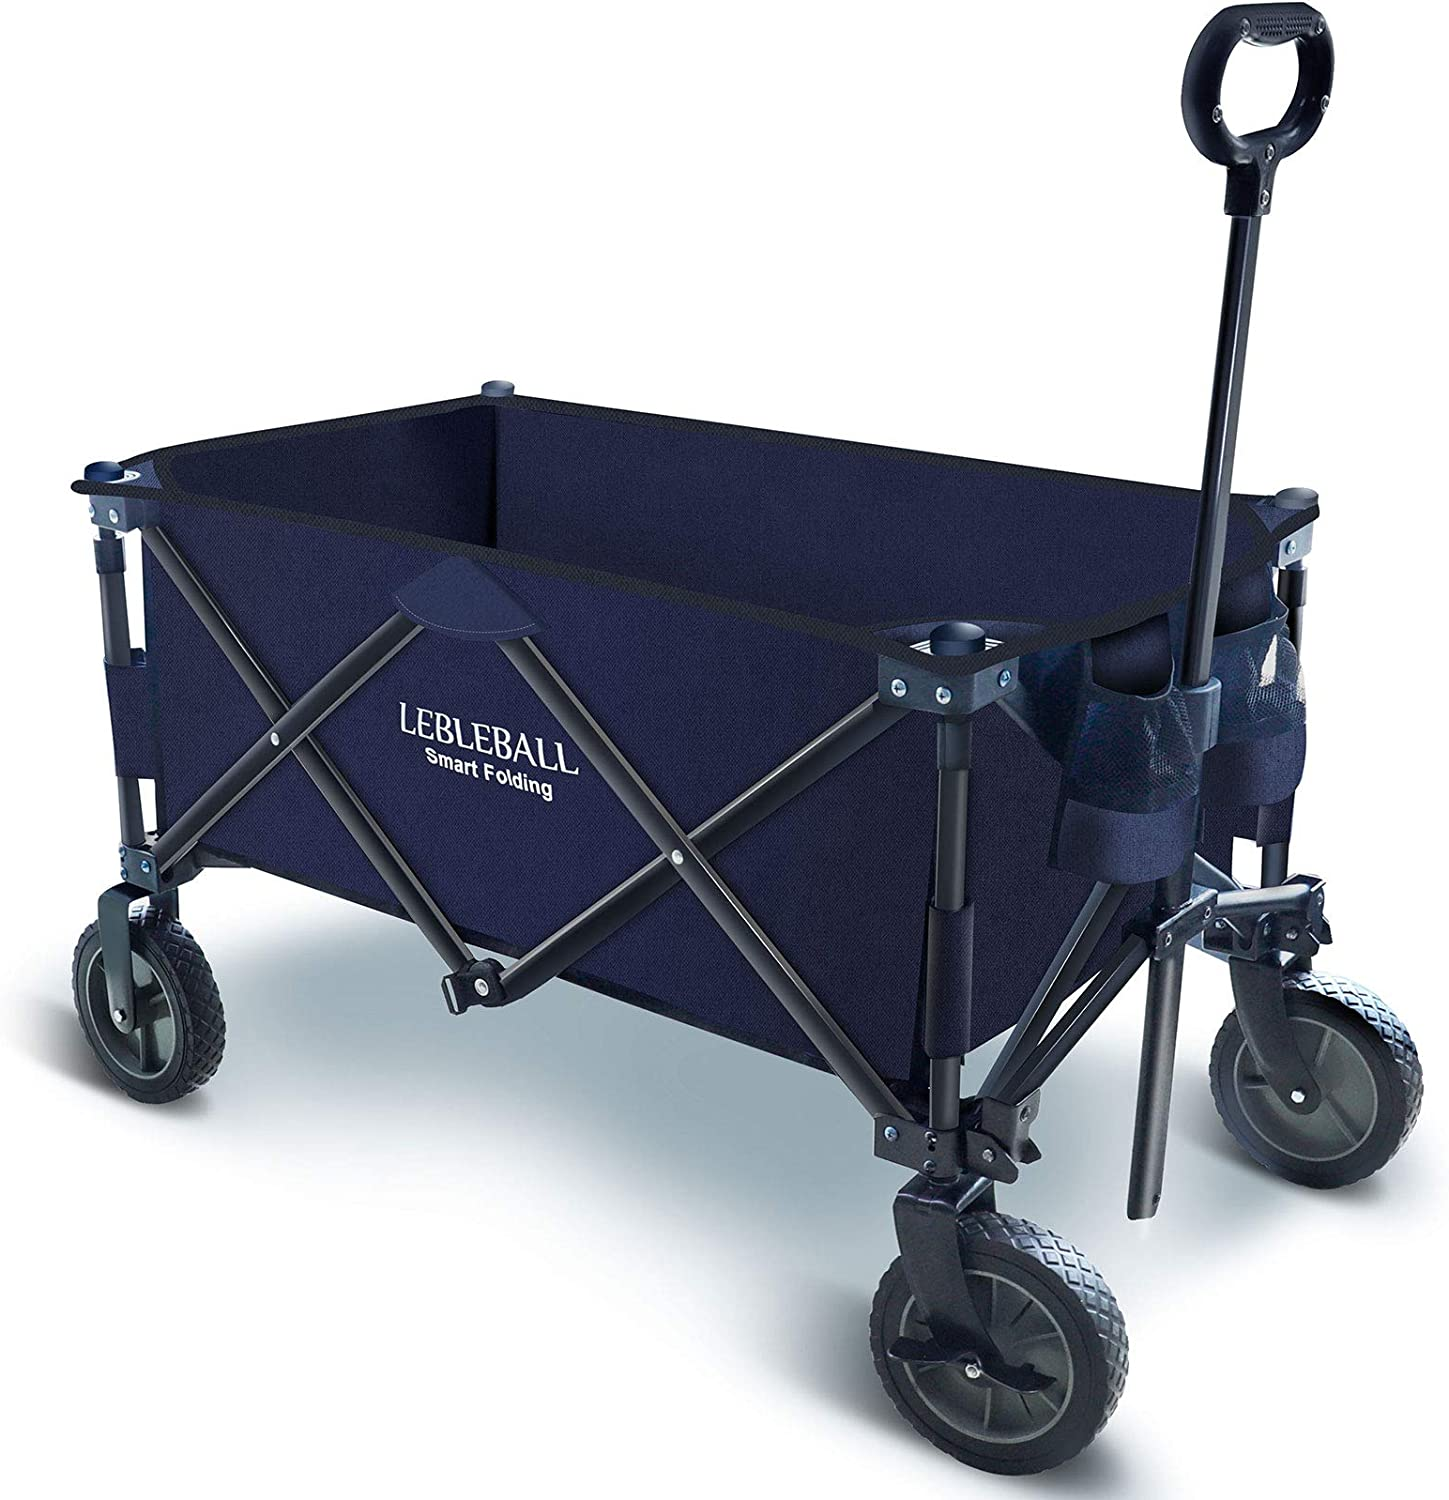 LEBLEBALL Folding Outdoor Utility Wagon Quick Set- Up Heavy Duty Garden Cart Collapsible Wagon Cart with Storage Bags Beach Wagon with Wheels Brake for Camping Garden Beach Picnic, Navy Blue